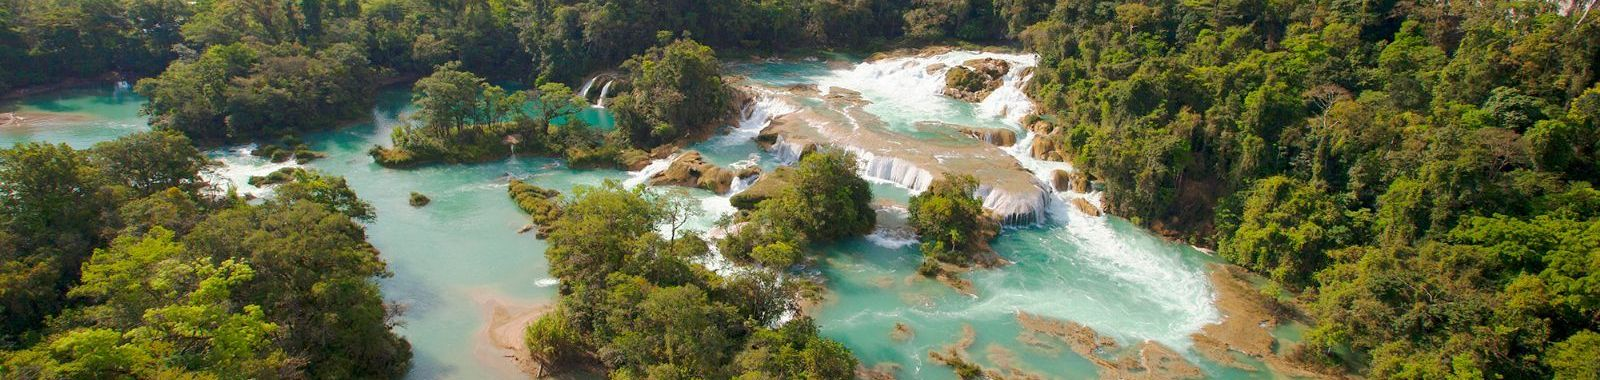 Chiapas Adventure: Ziplines, Waterfalls, and Ruins